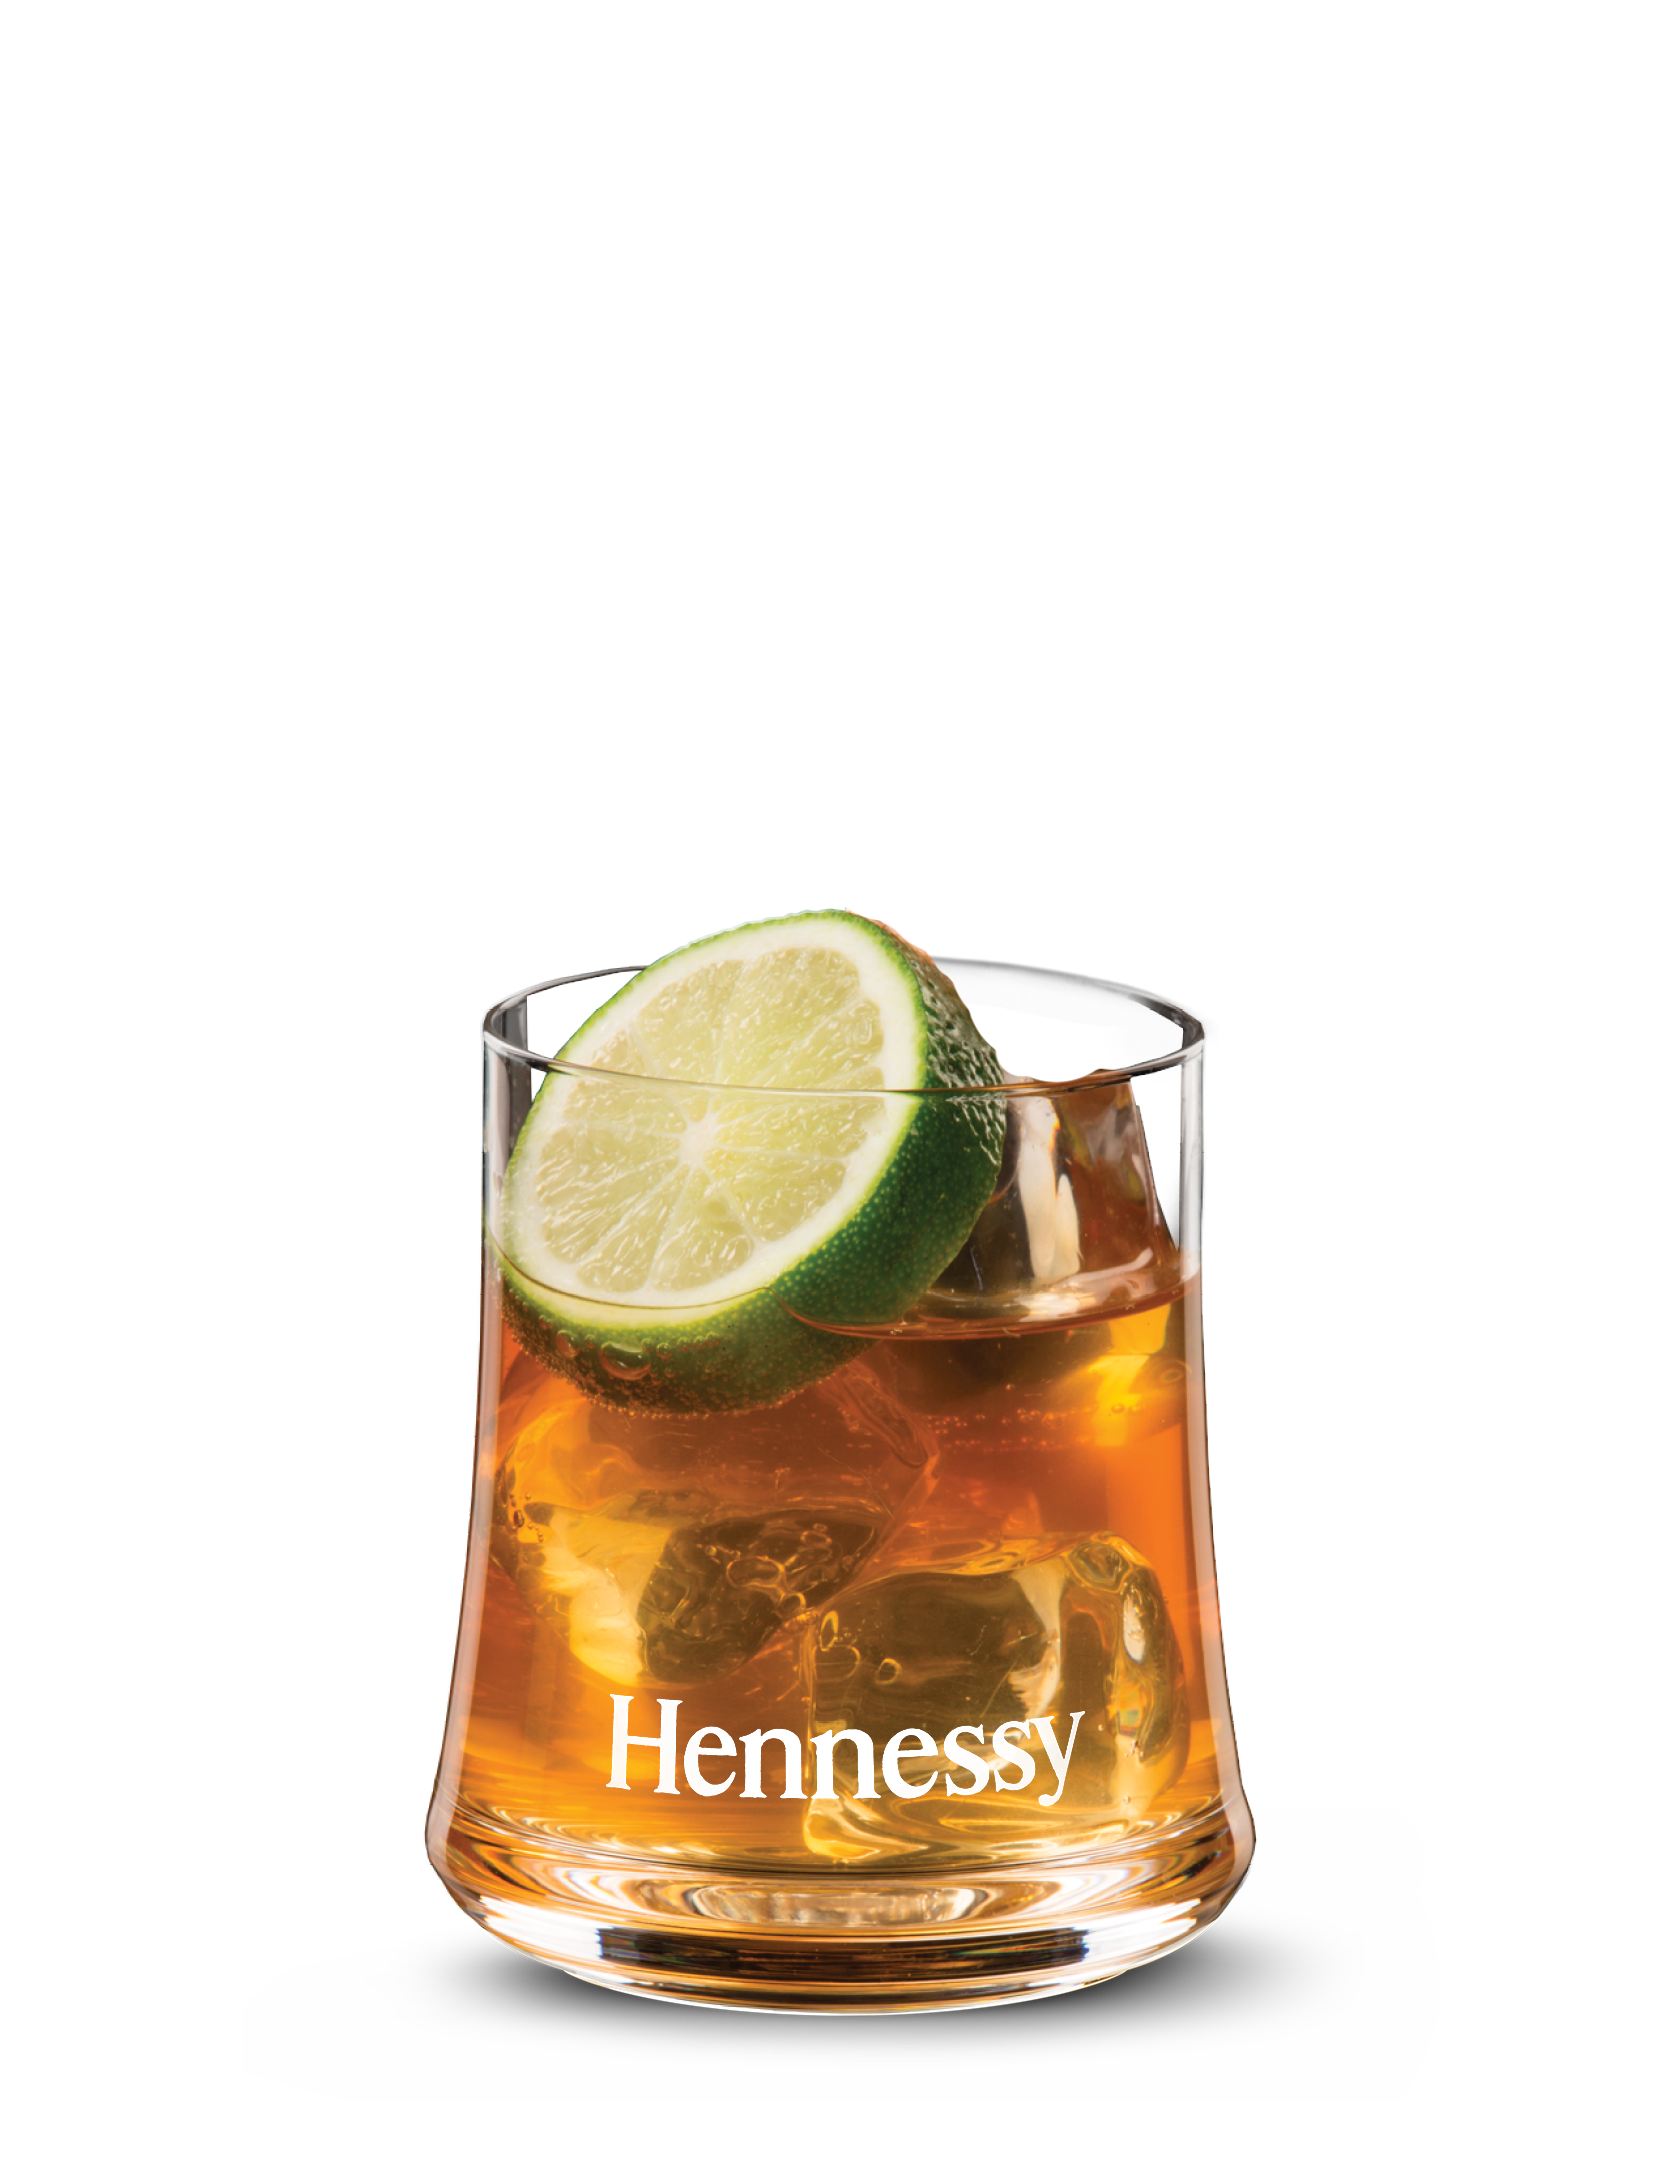 NBA cocktail, the Hennessy Jumpshot Ginger, featuring Hennessy cognac